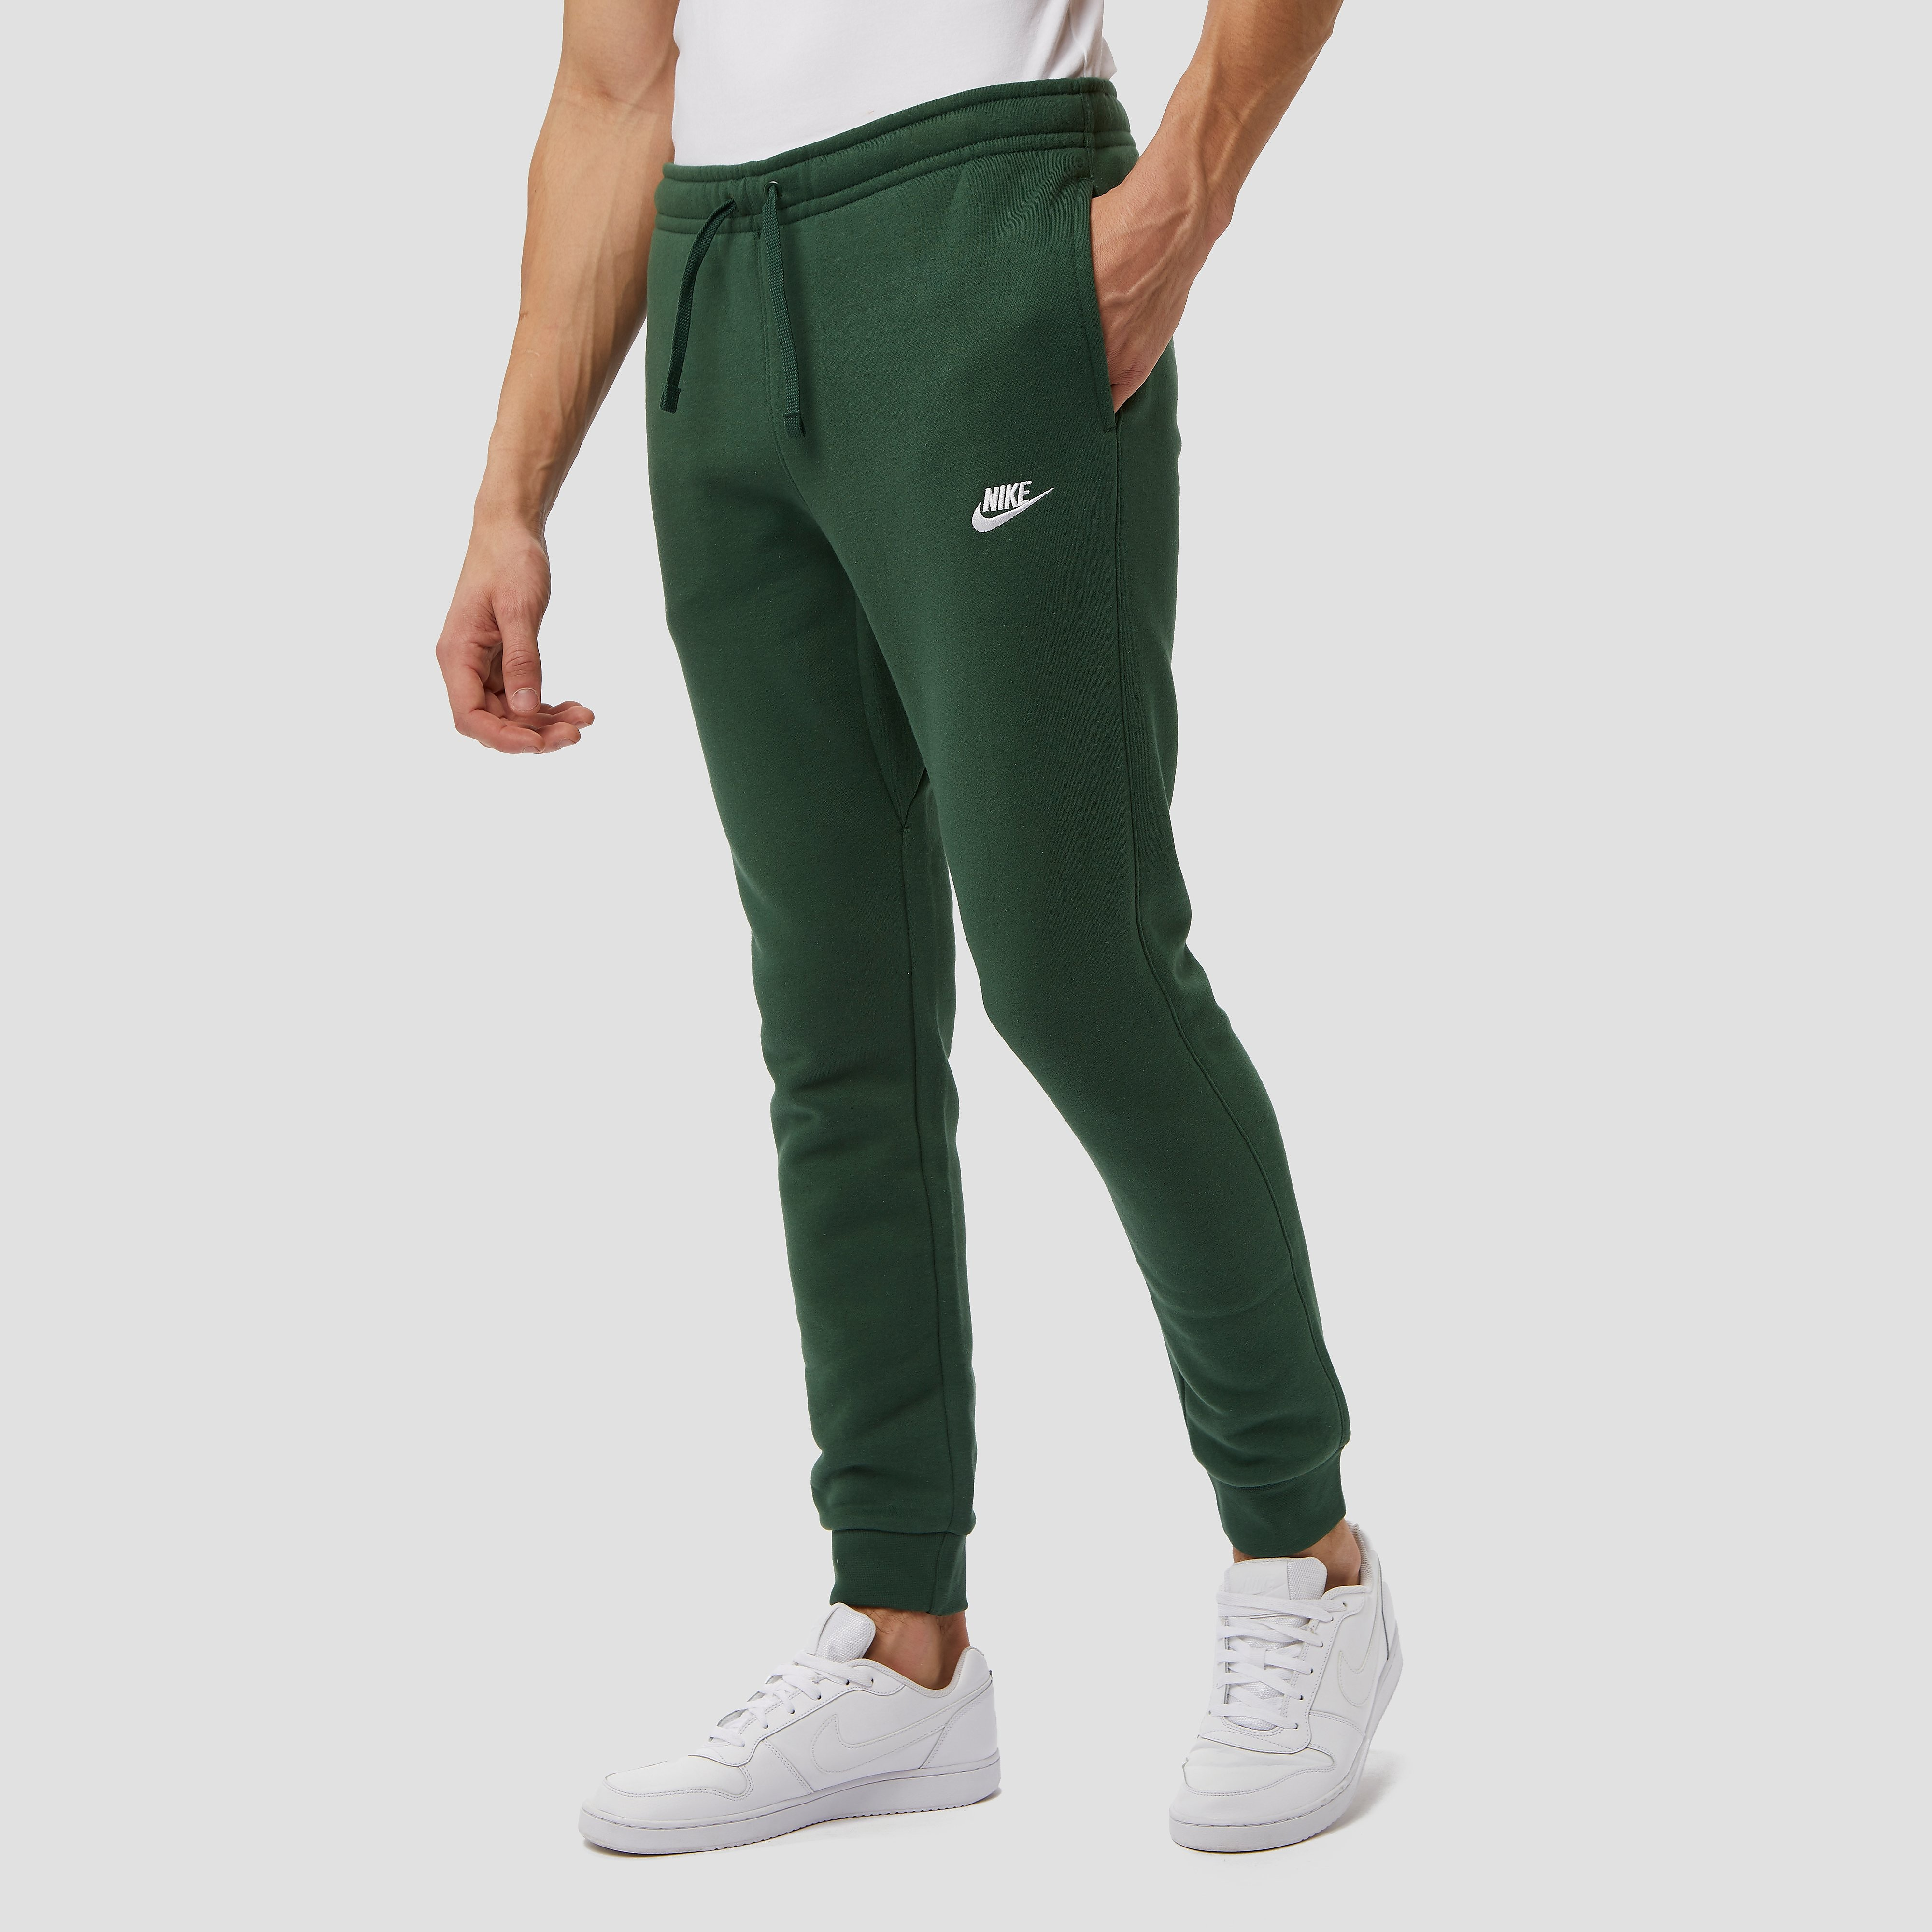 NIKE SPORTSWEAR CLUB JOGGINGBROEK HEREN